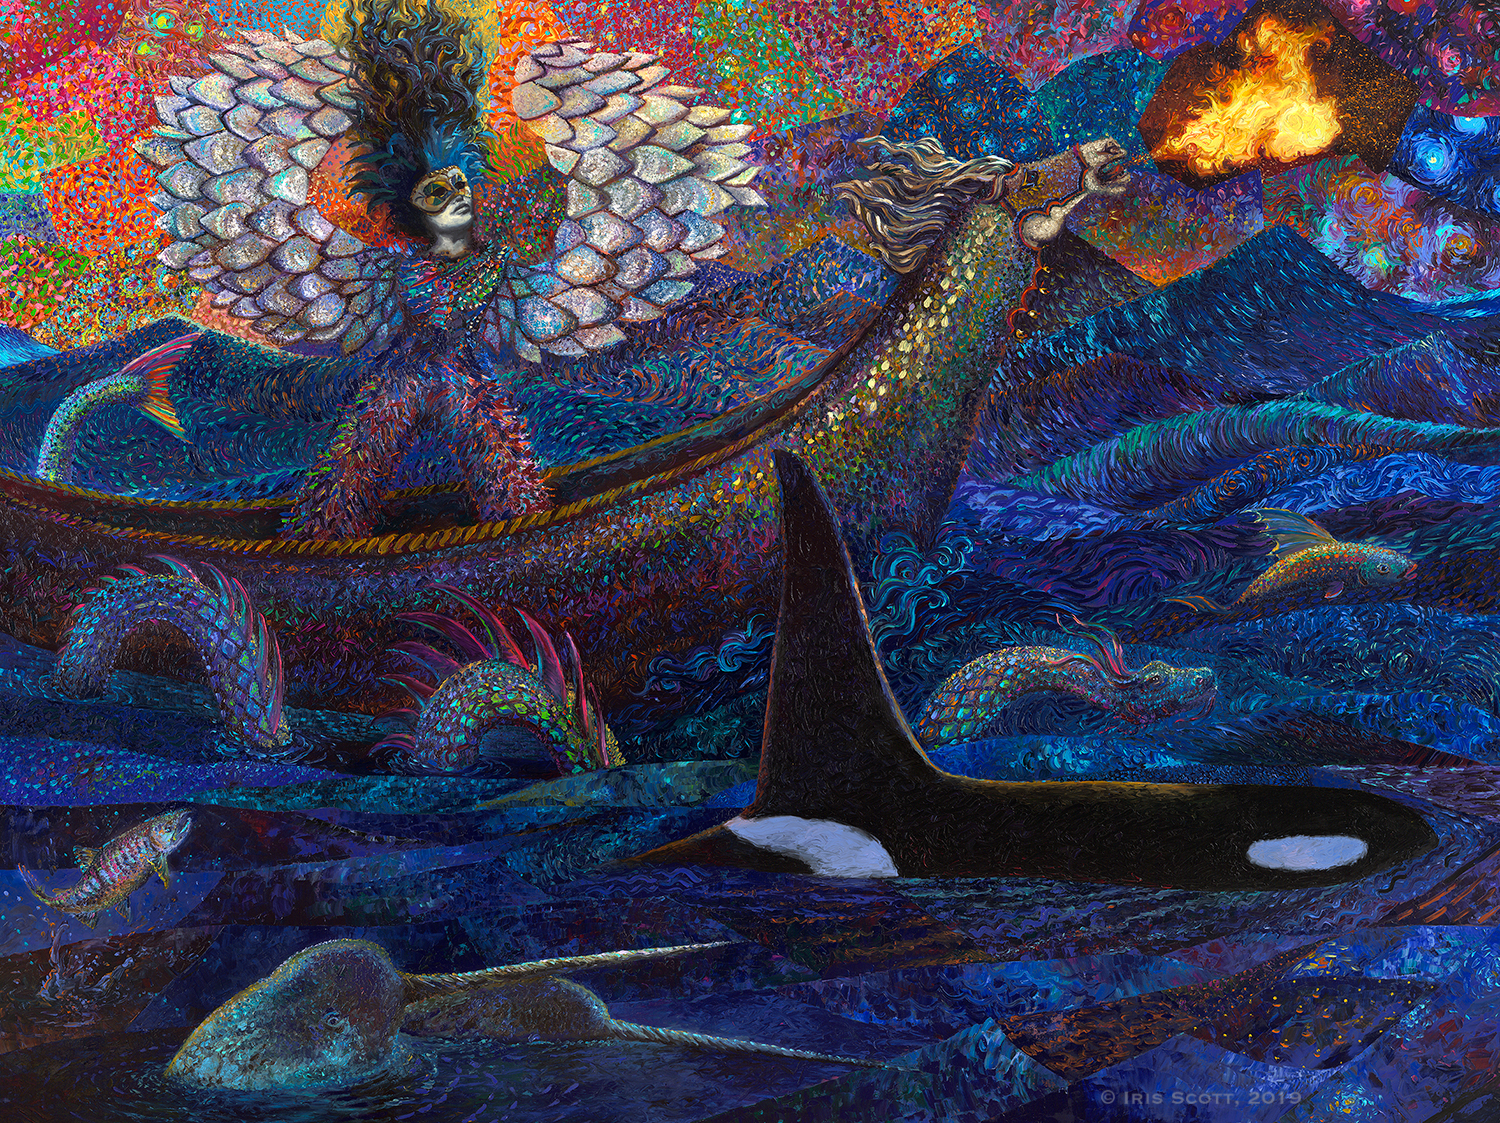 Exodus of Pisces | 96 x 72 inches